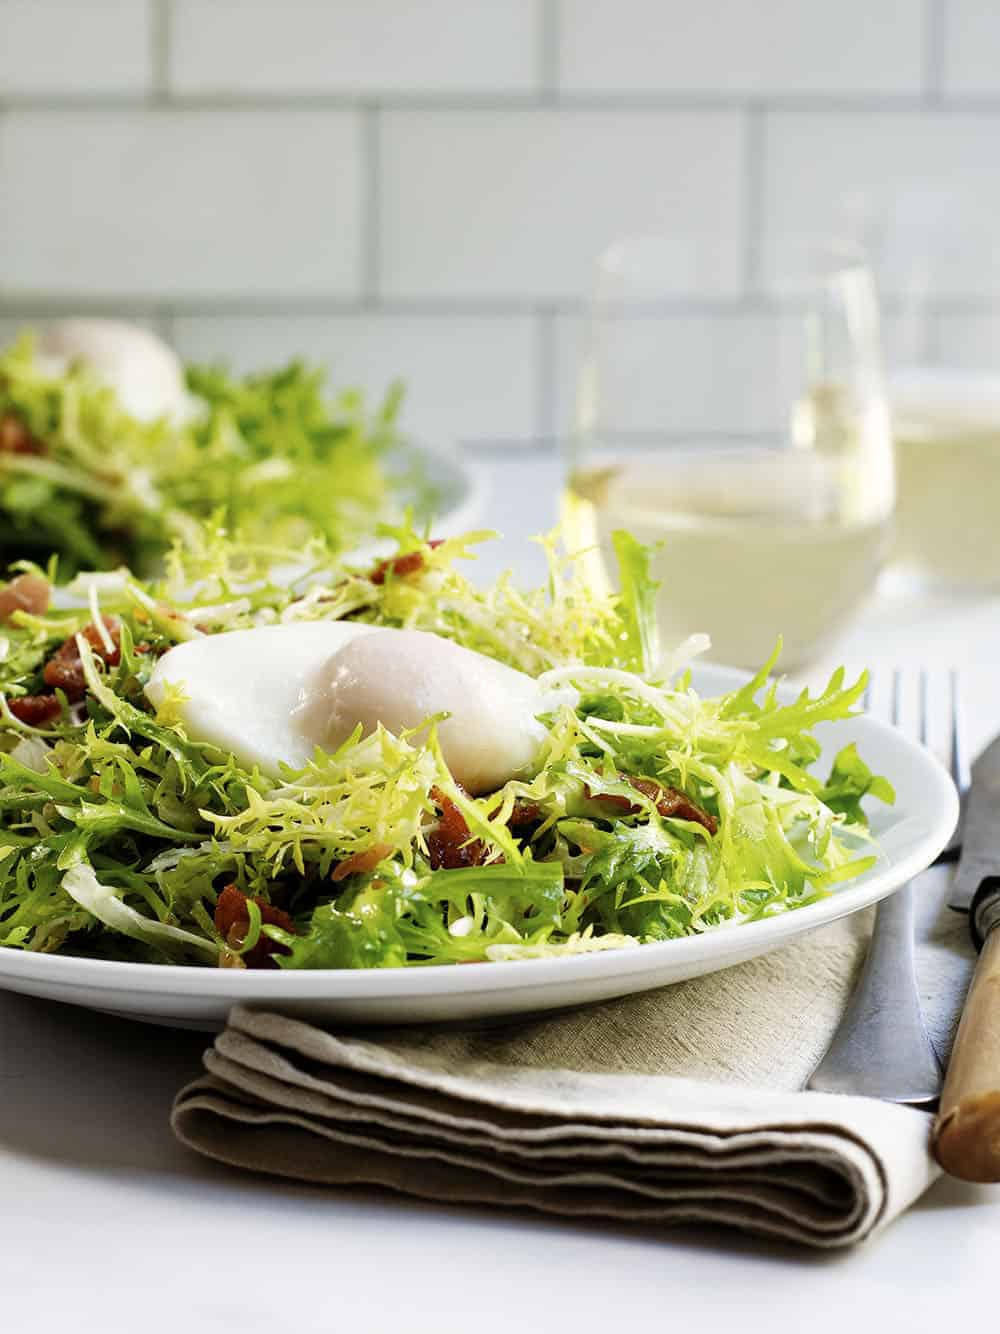 Salad Lyonnaise served on a white plate